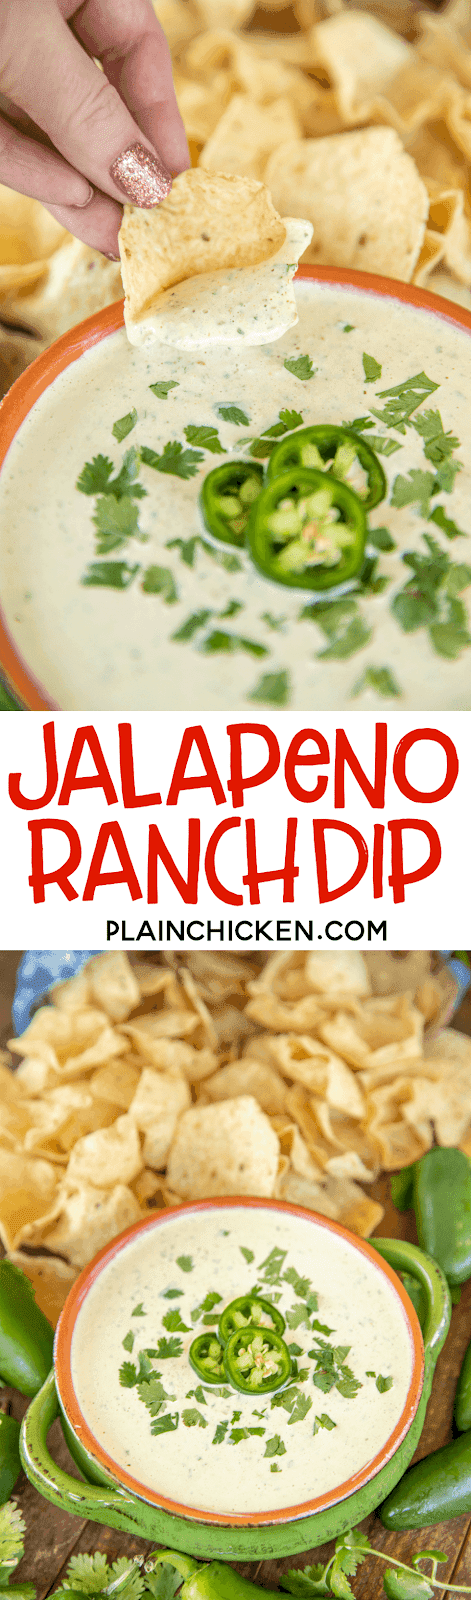 collage of two photos of jalapeno ranch dip and chips